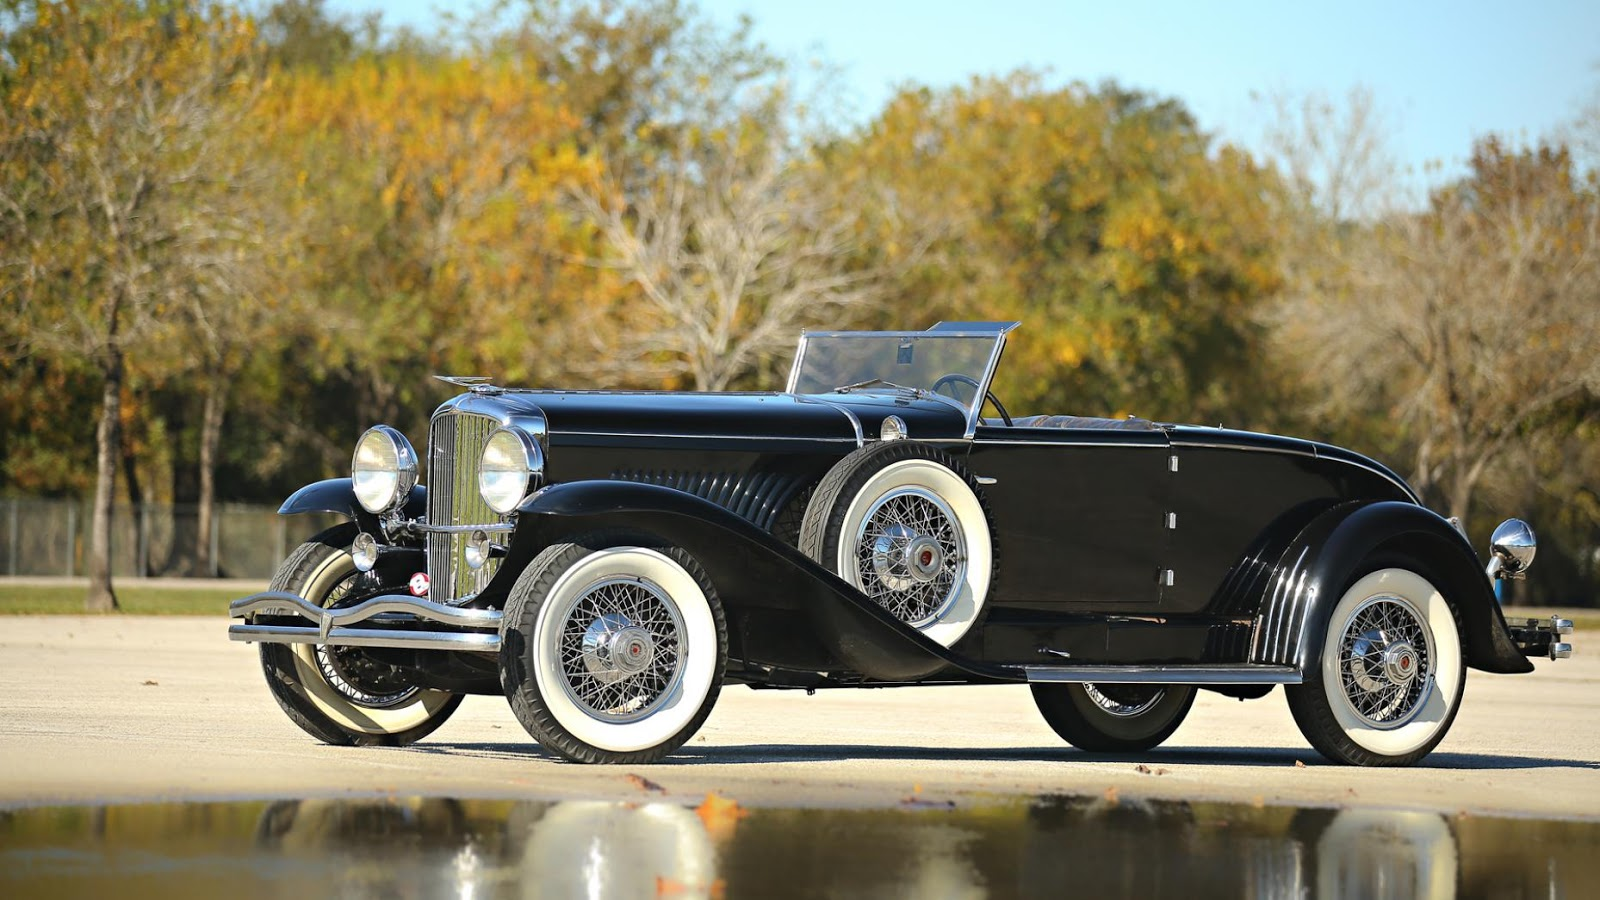 1931 Dusenberg Model J Murphy Convertible Coupe: $2,640,000